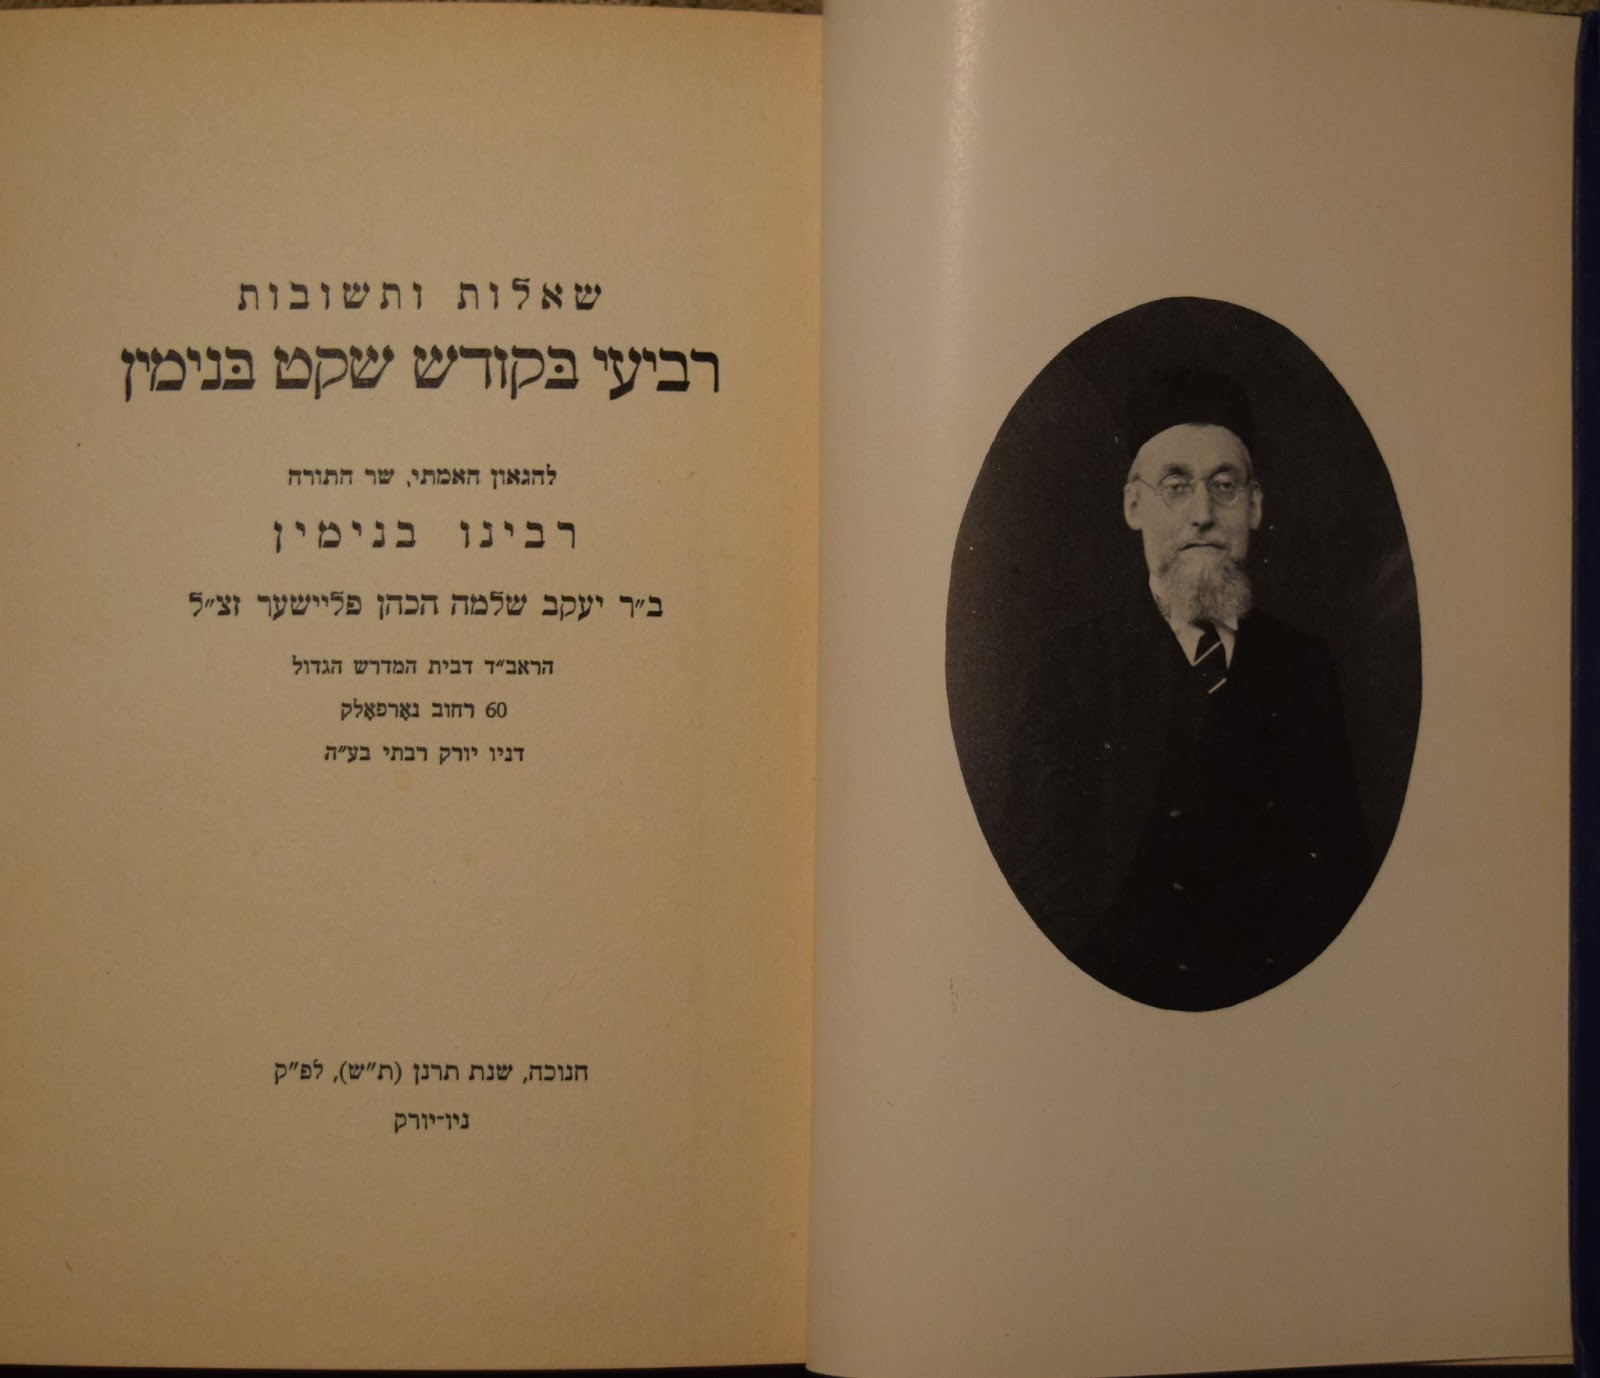 the title page informs us that r fleischer was the av beth din at beth hamedrash hagadol synagogue standing at 60 norfolk st it was built in the